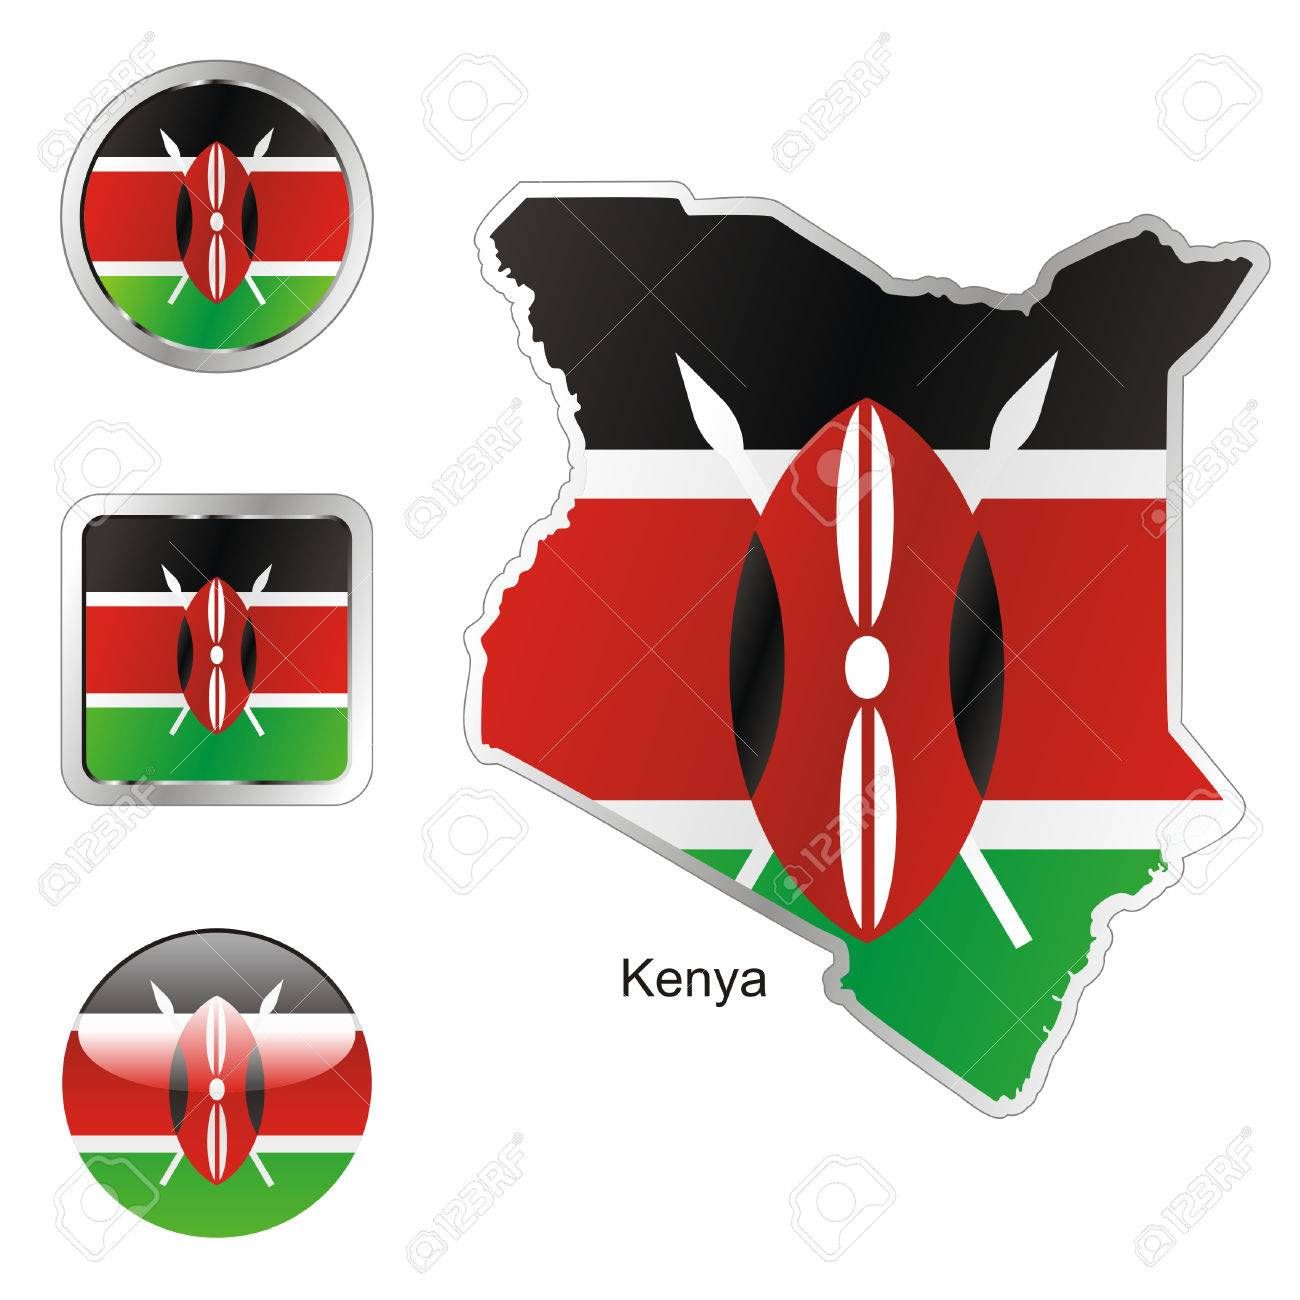 Fully Editable Flag Of Kenya In Map And Web Buttons Shapes Royalty ...